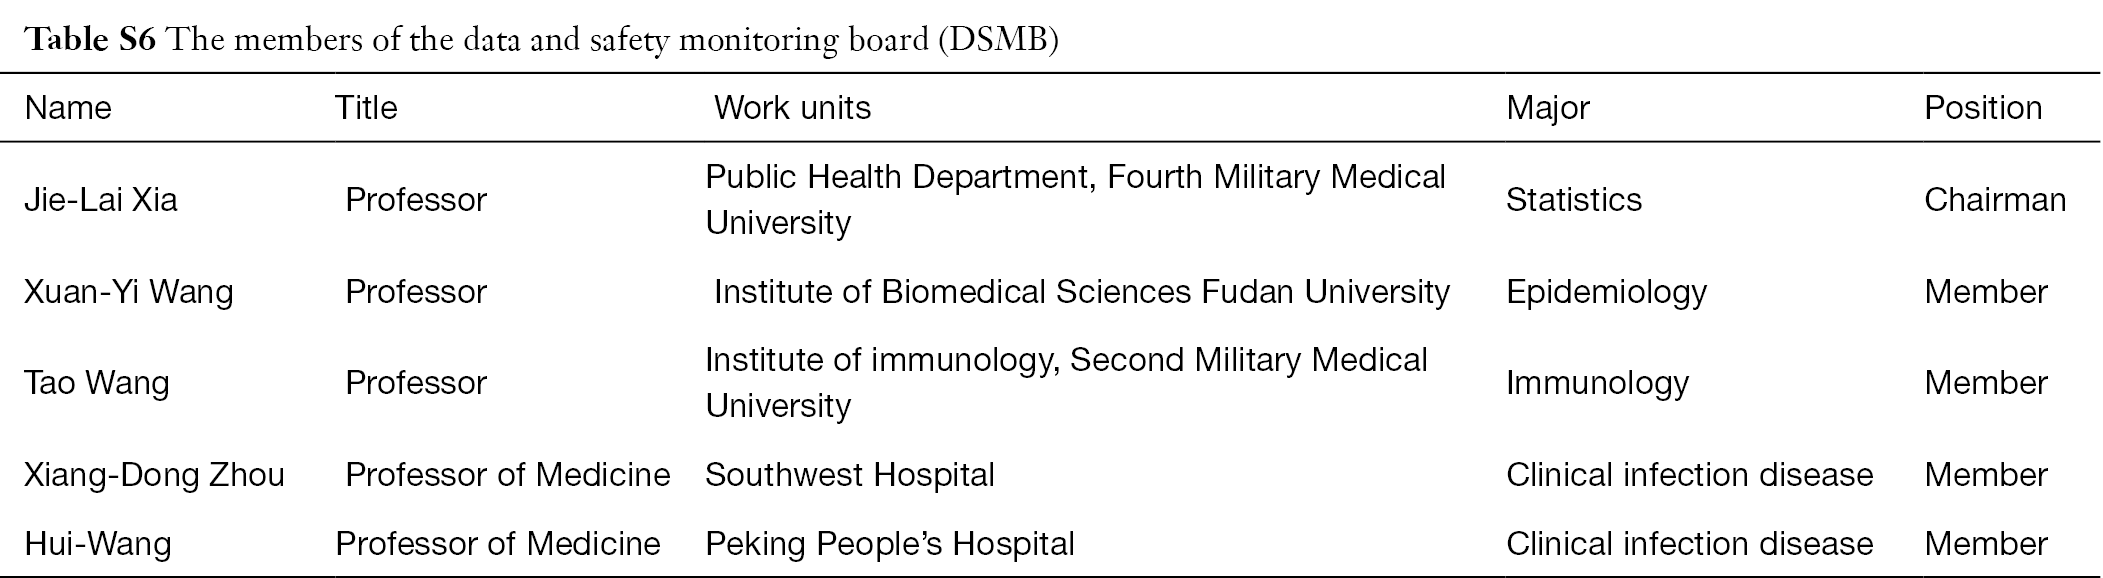 Table S6